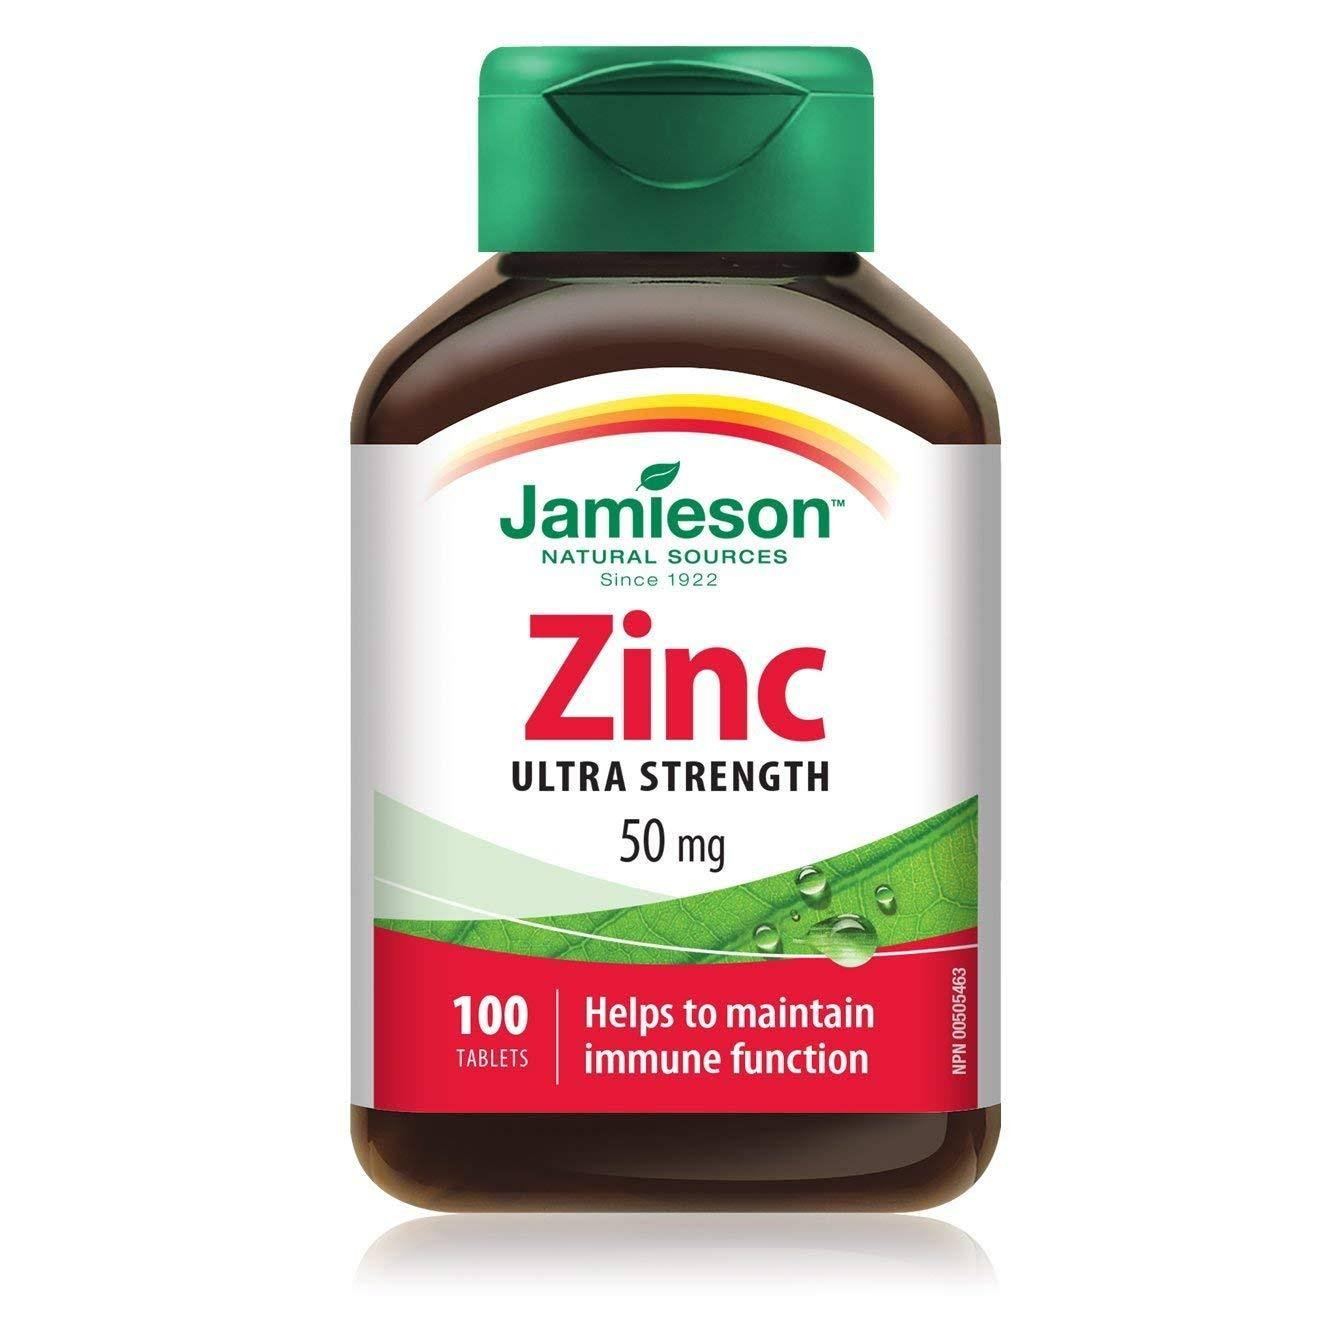 Jamieson Zinc Supplement - 50mg, 100 Tablets